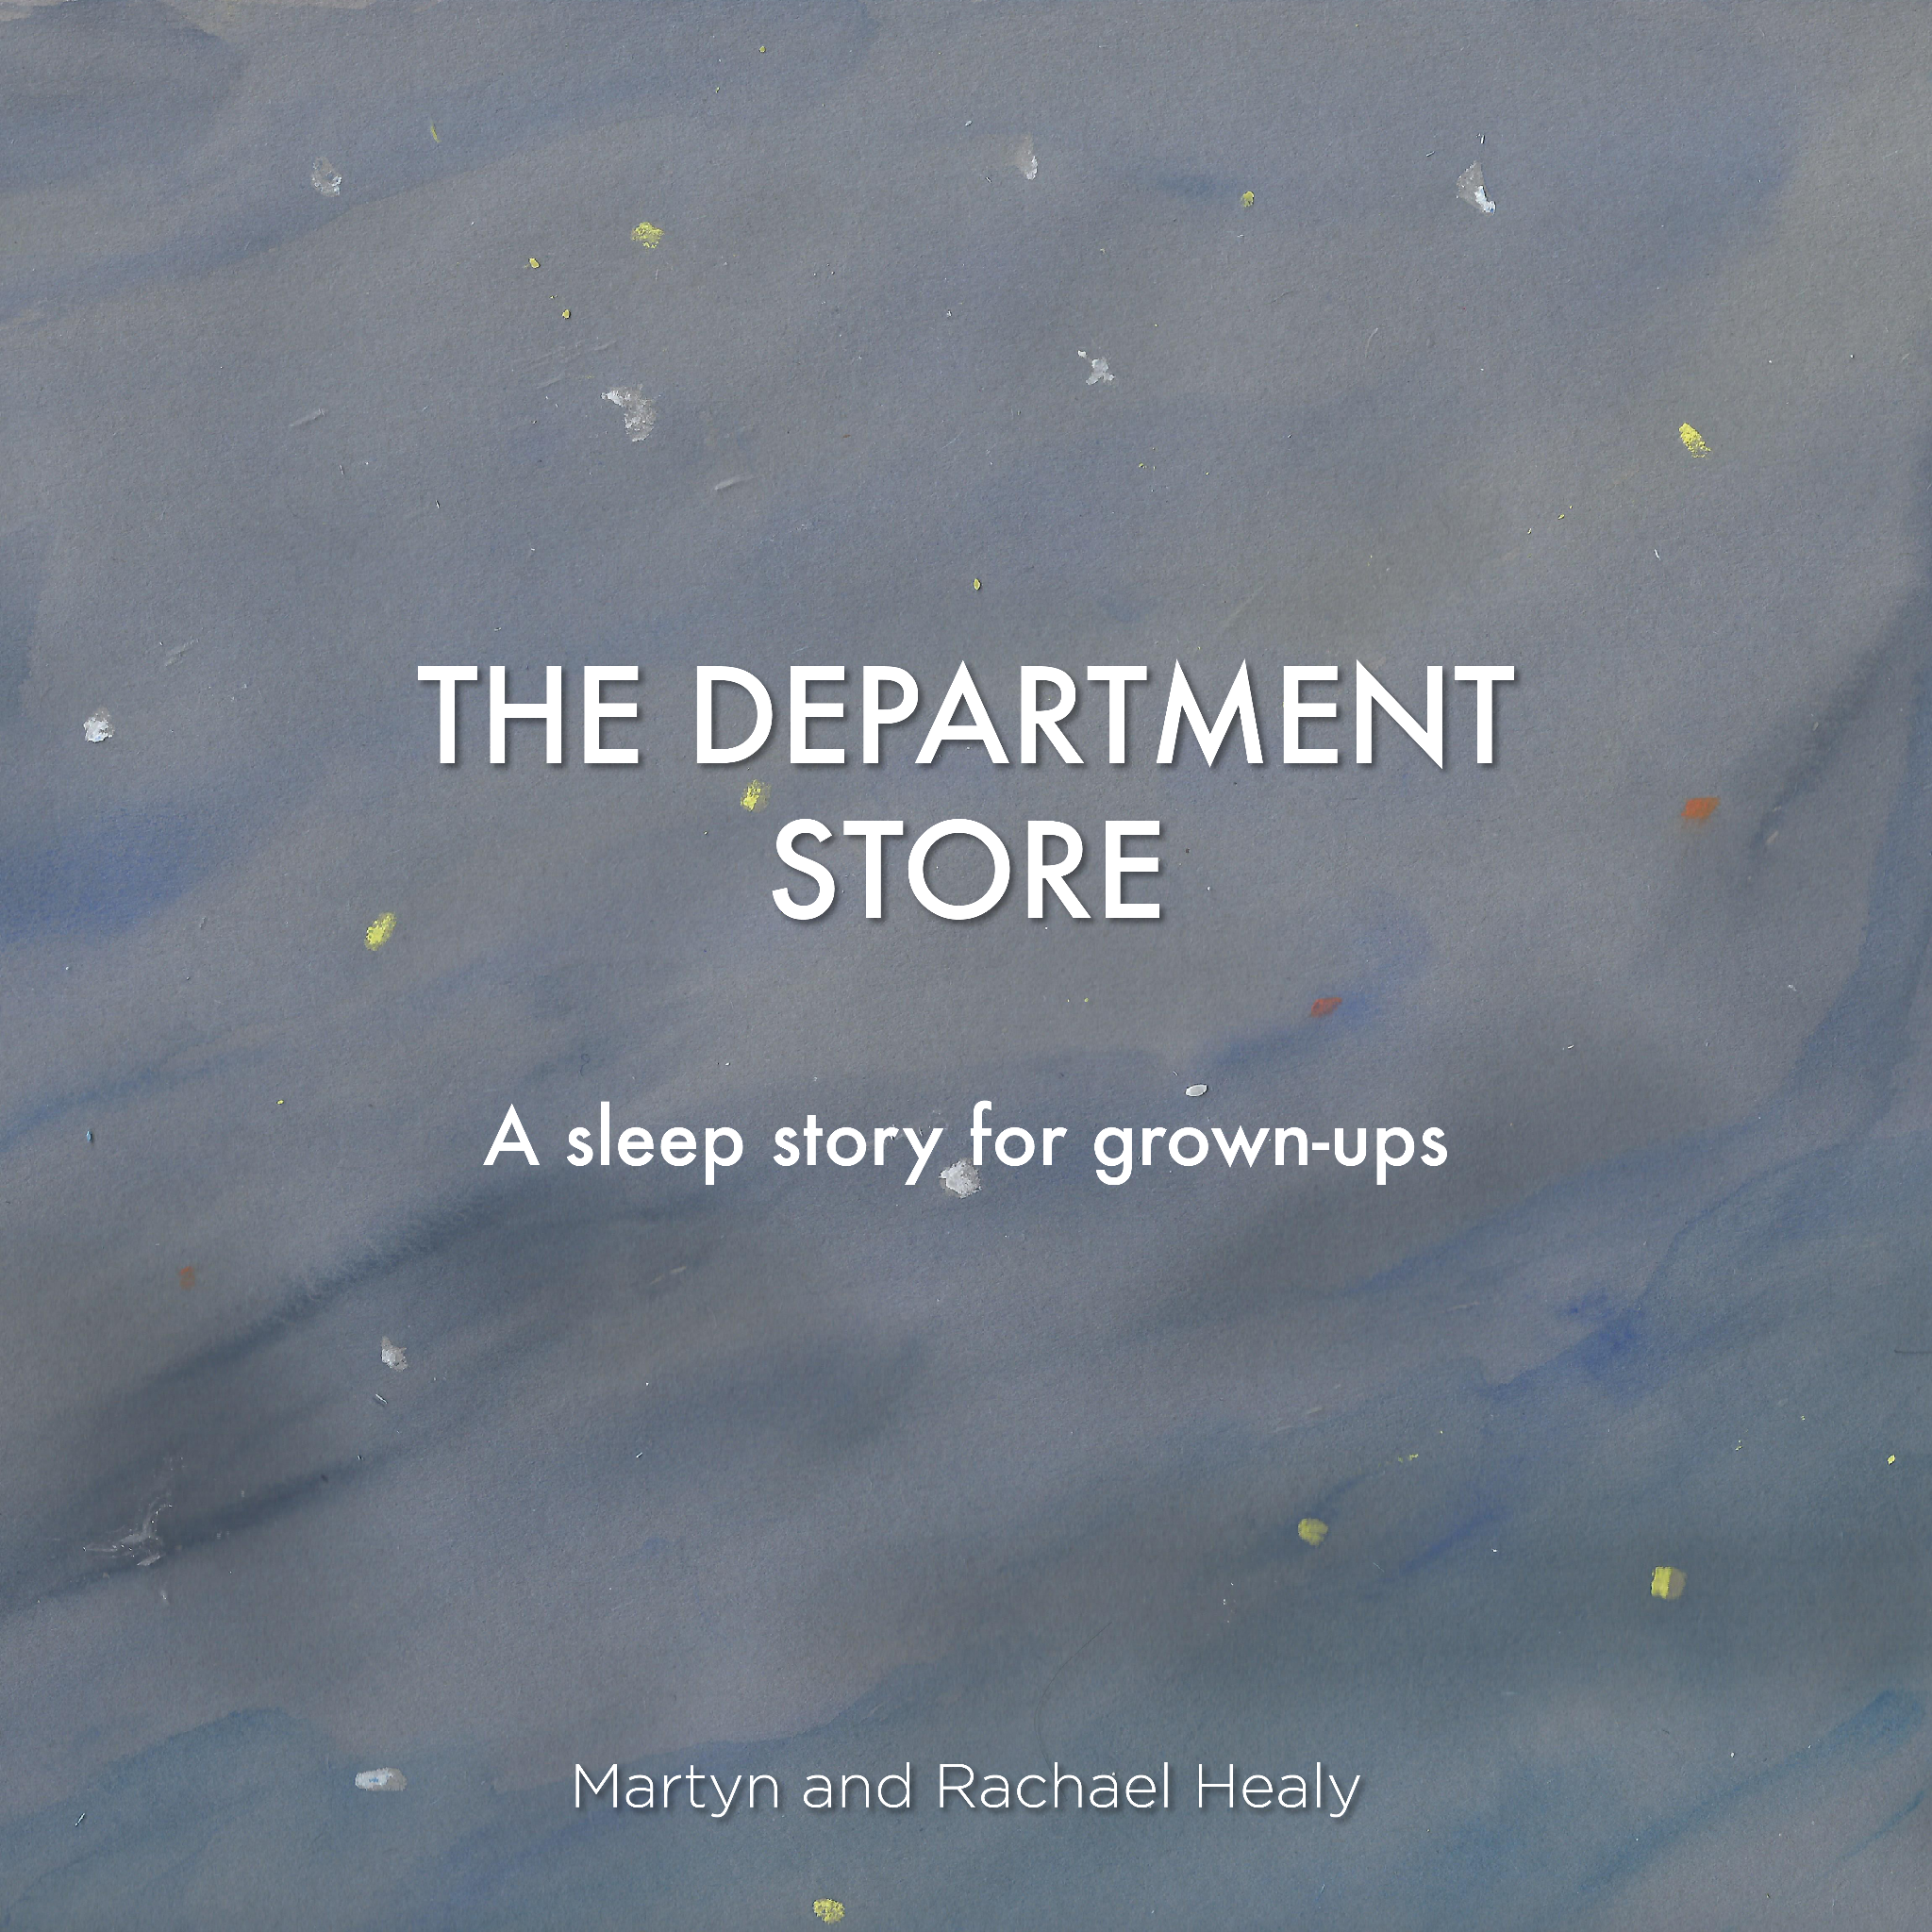 The Department store: A Sleep Story for Grown-ups